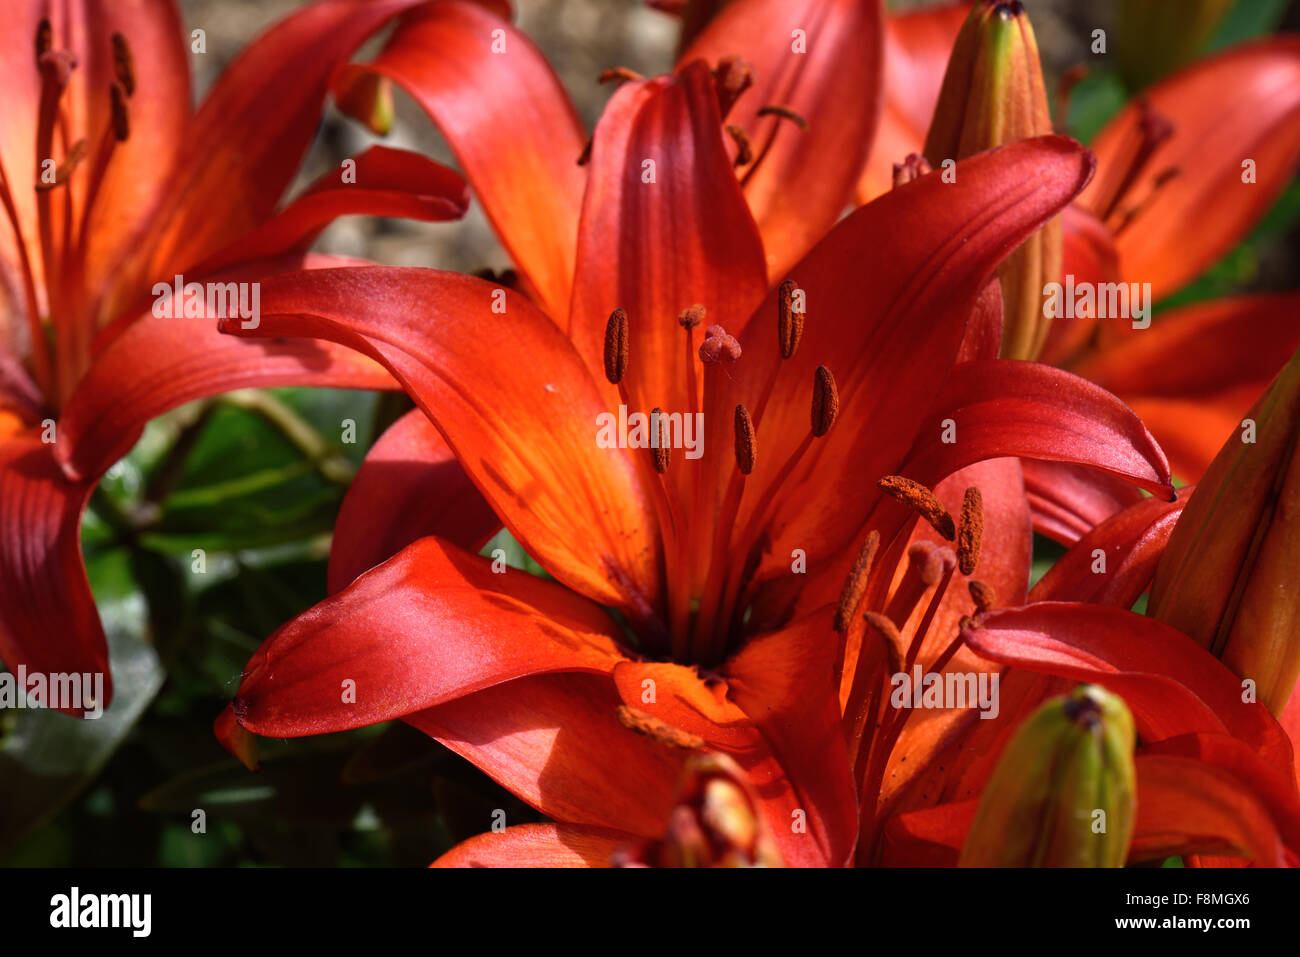 Low growing red flowered lilies open in bright sunlight in a garden flower bed, Berkshire, June - Stock Image